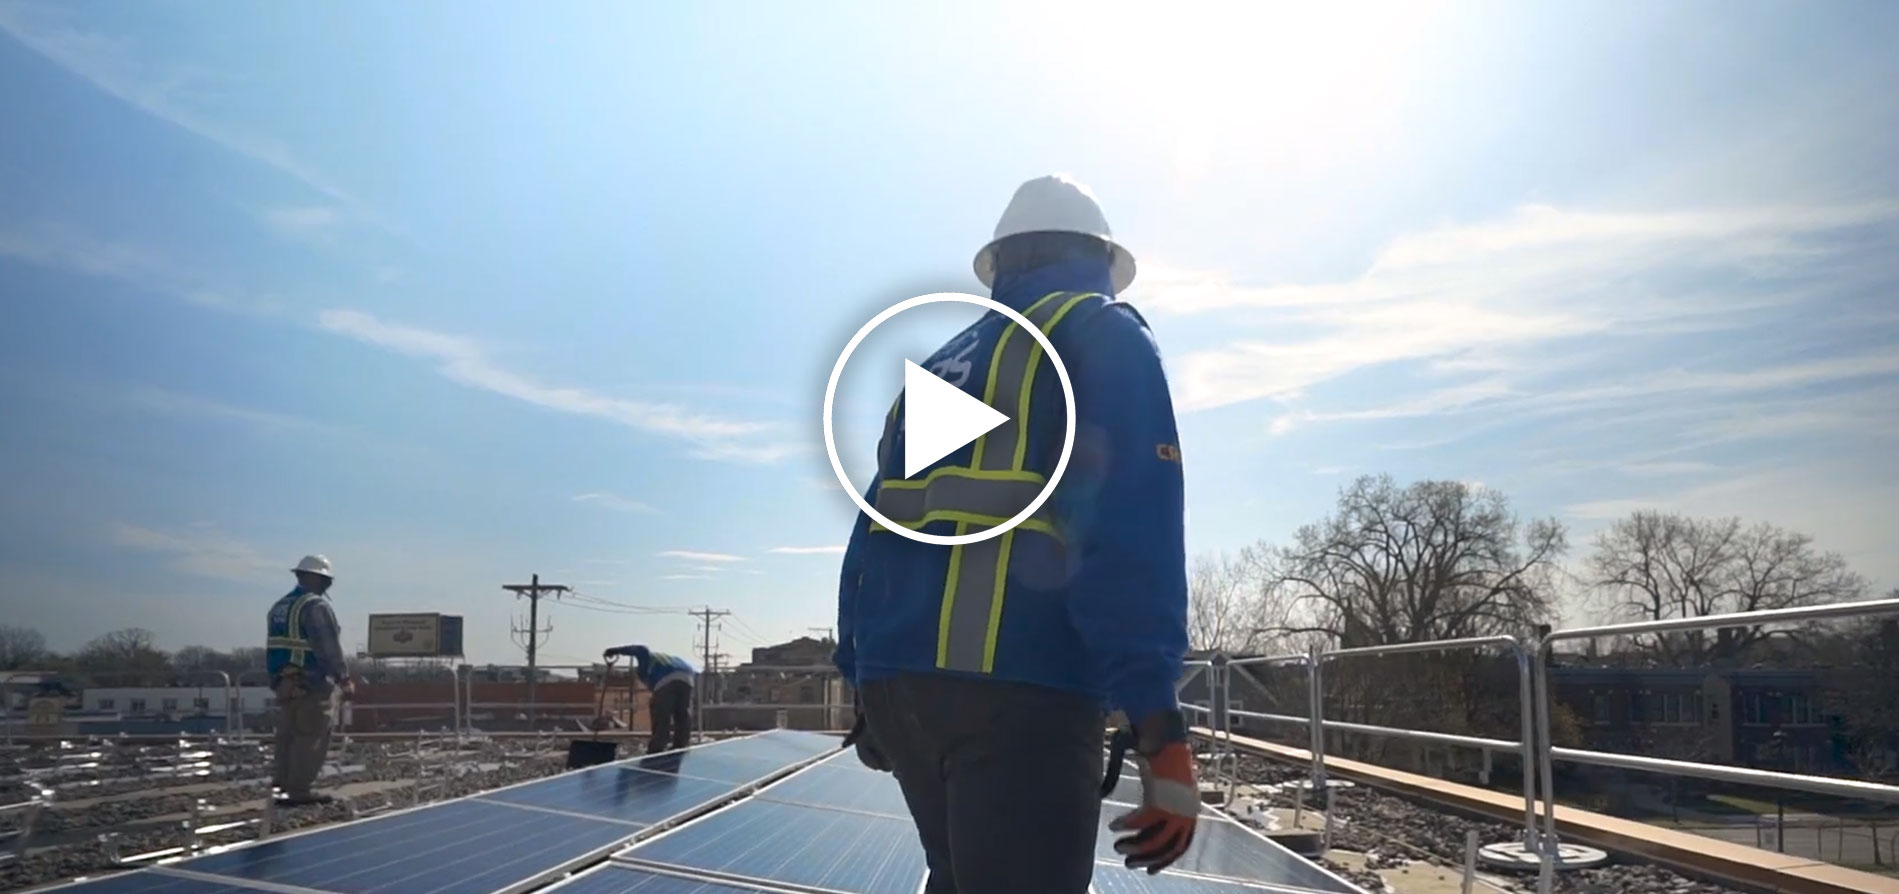 Power of MN Thumbnail - Solar worker on rooftop